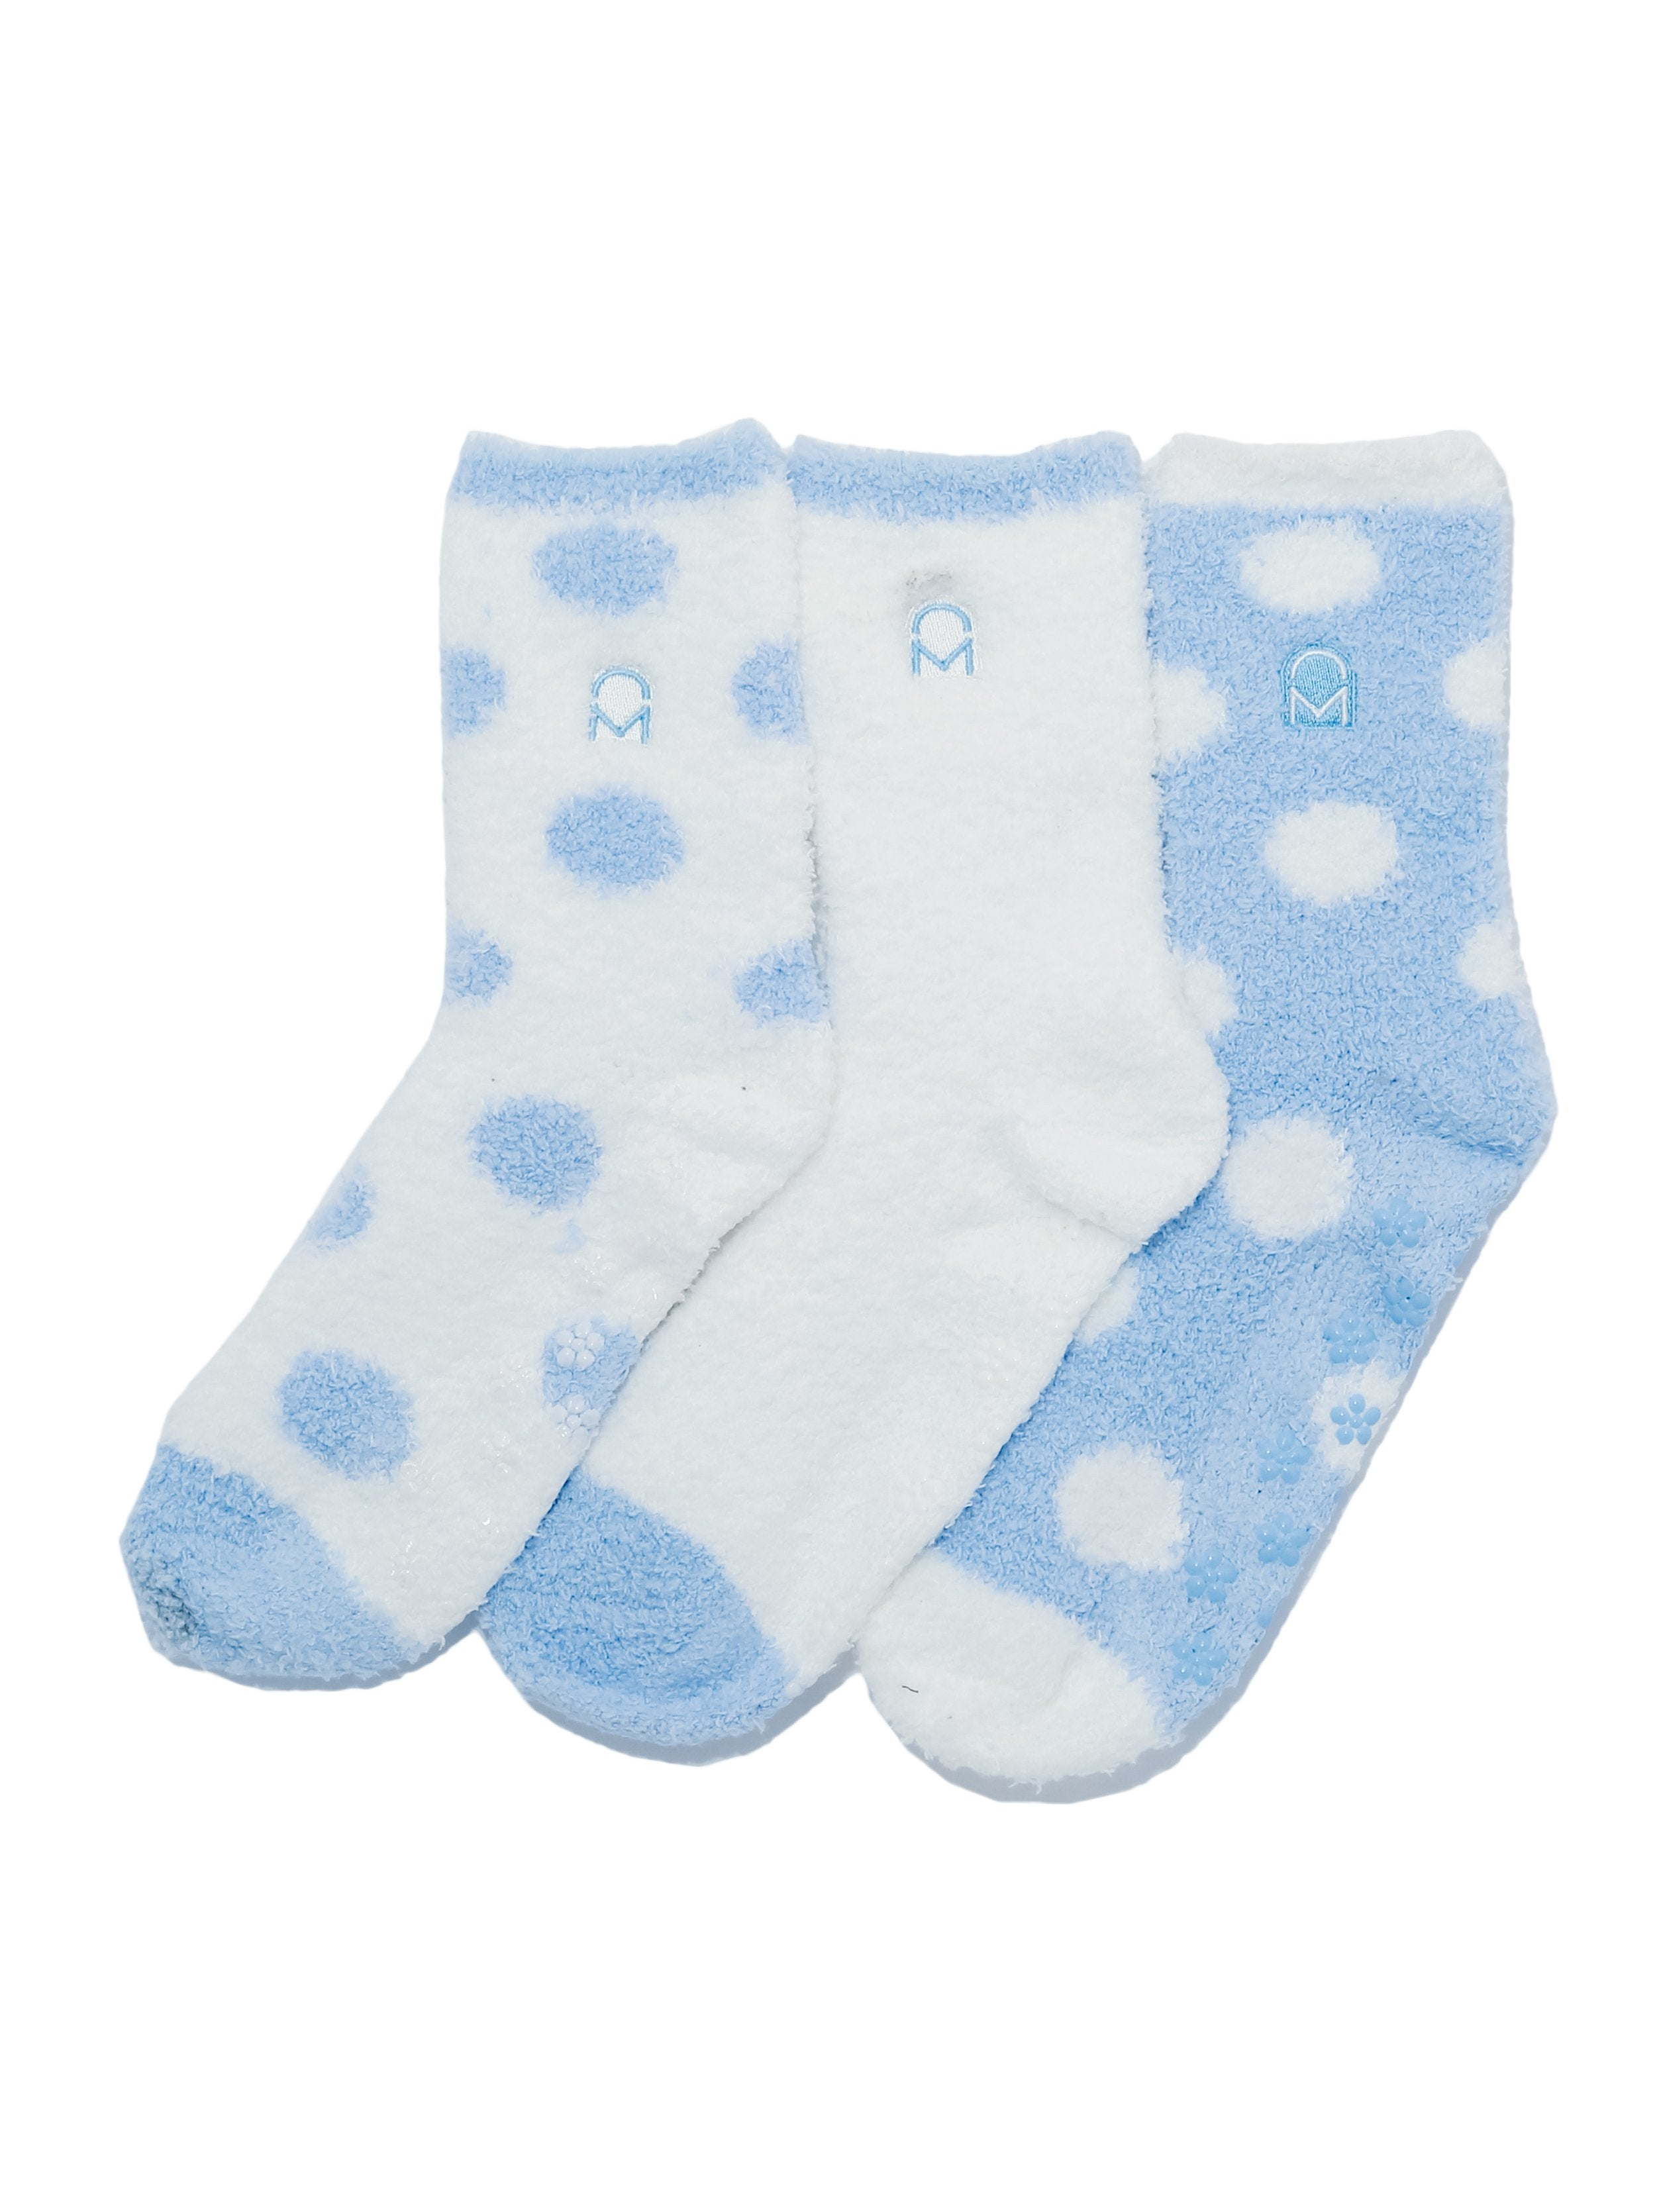 Women's (3 Pairs) Soft Anti-Skid Fuzzy Winter Crew Socks - Set D16